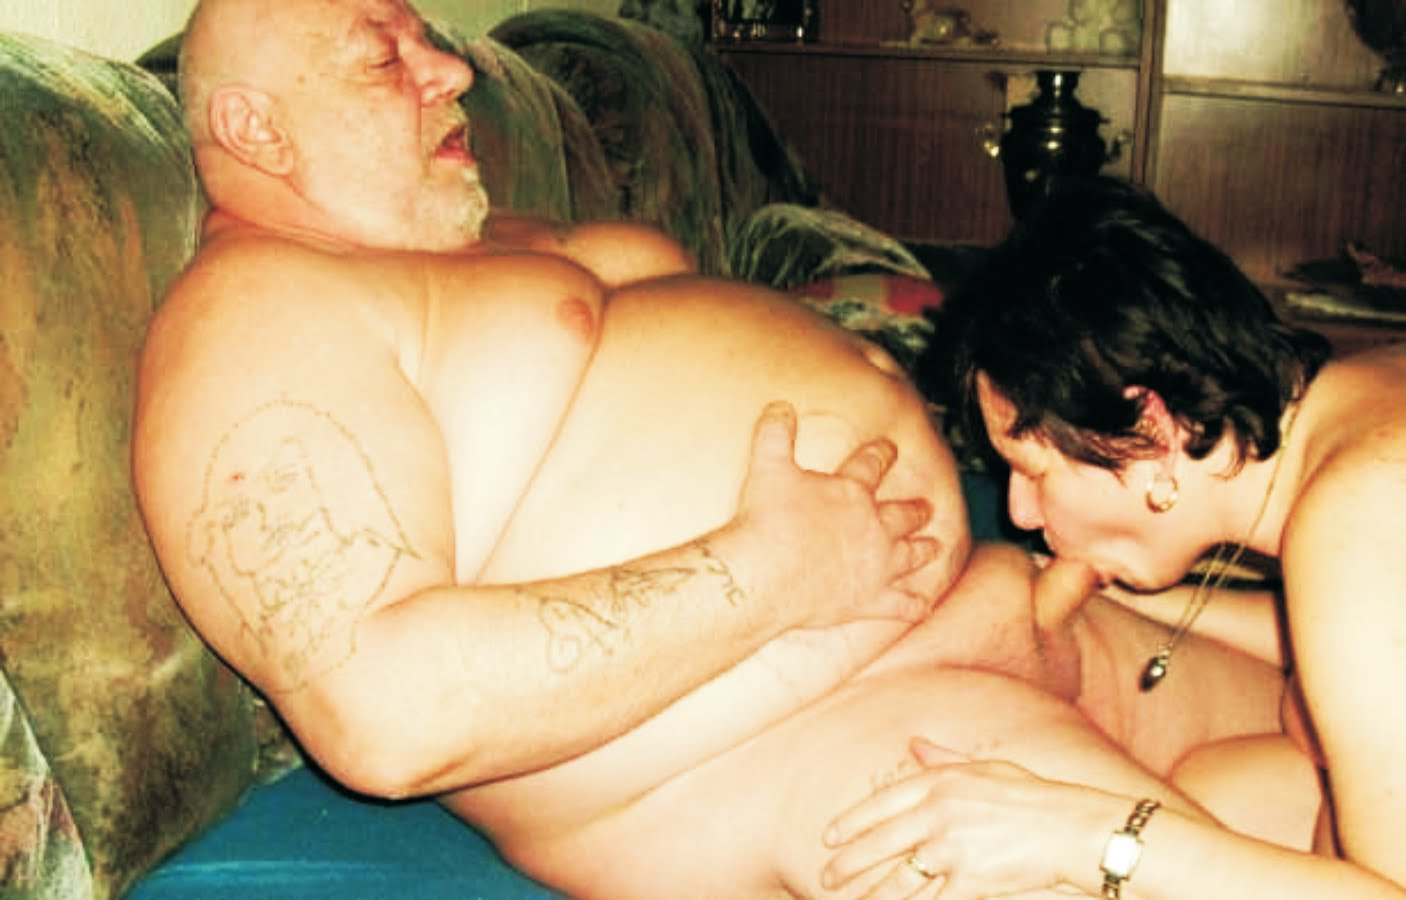 Images Of The Passion In Oldermen And Mature Women Some Blow Jobs